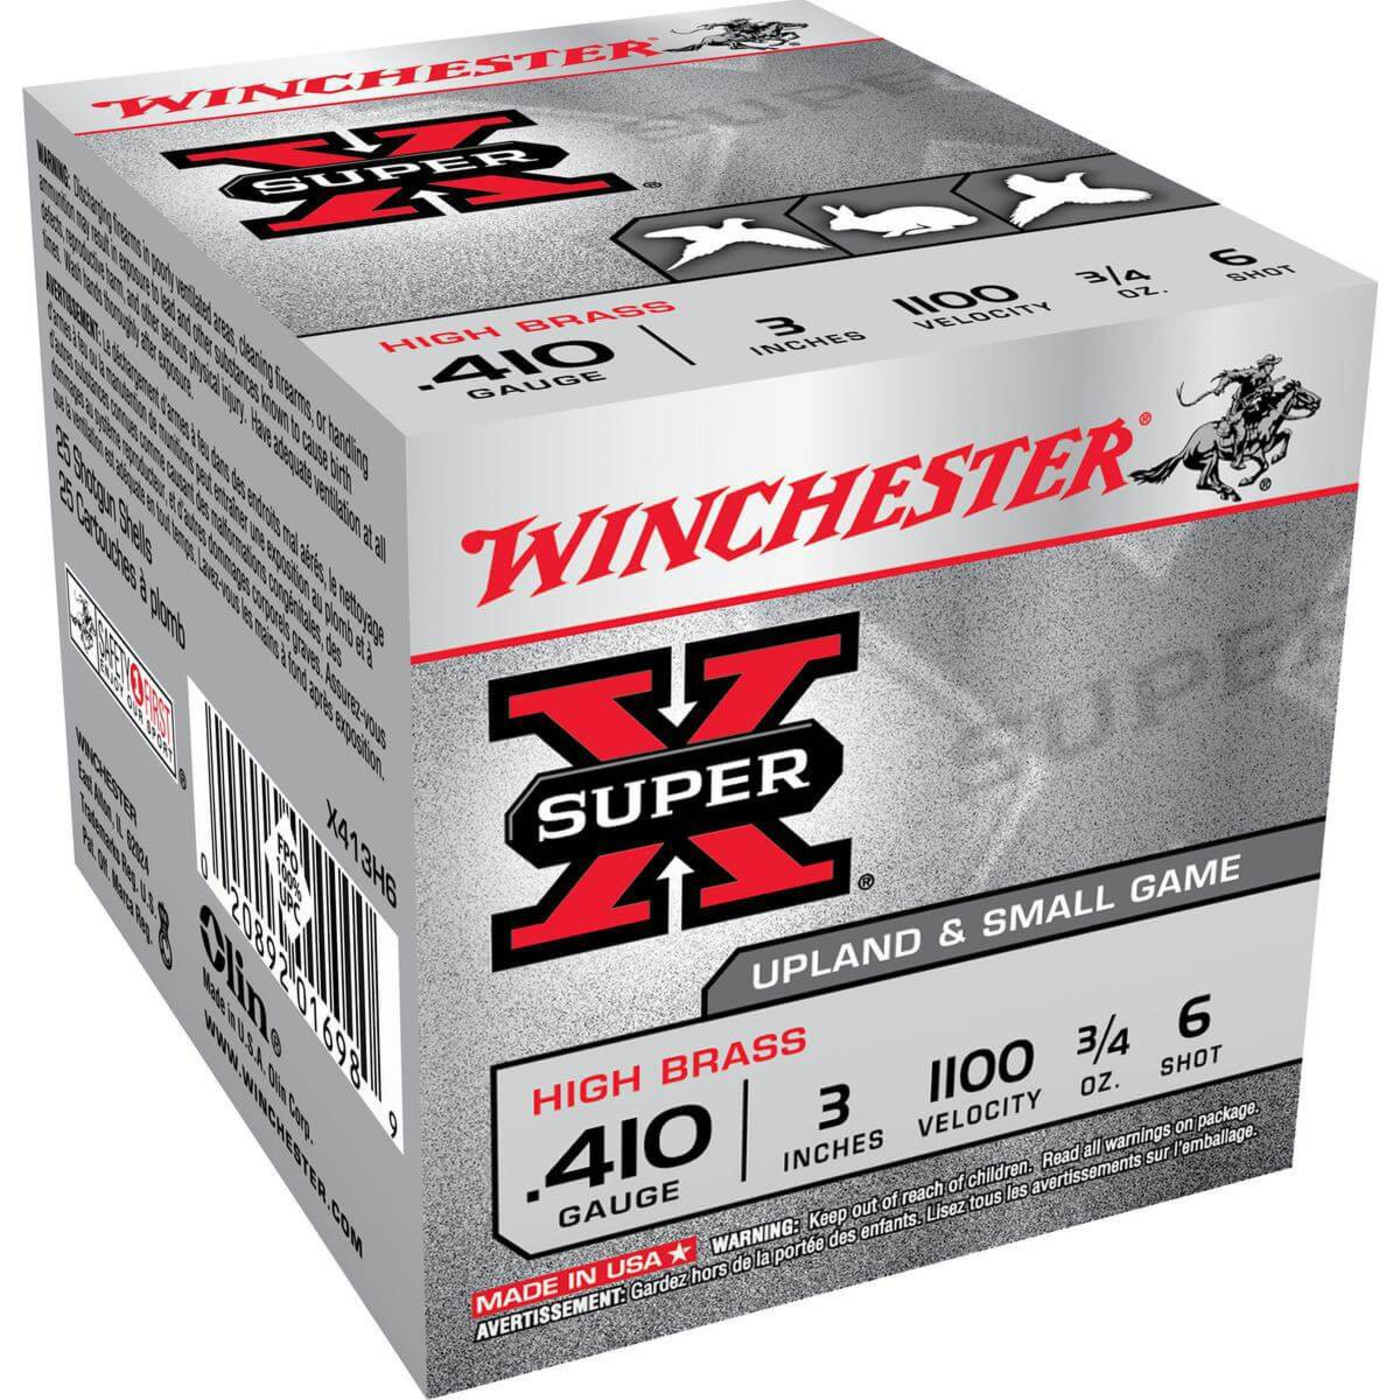 "Winchester X413H High Brass 410 Ga 3"" 3/4 Oz - Case in Shot Size 6 Ammo Size"